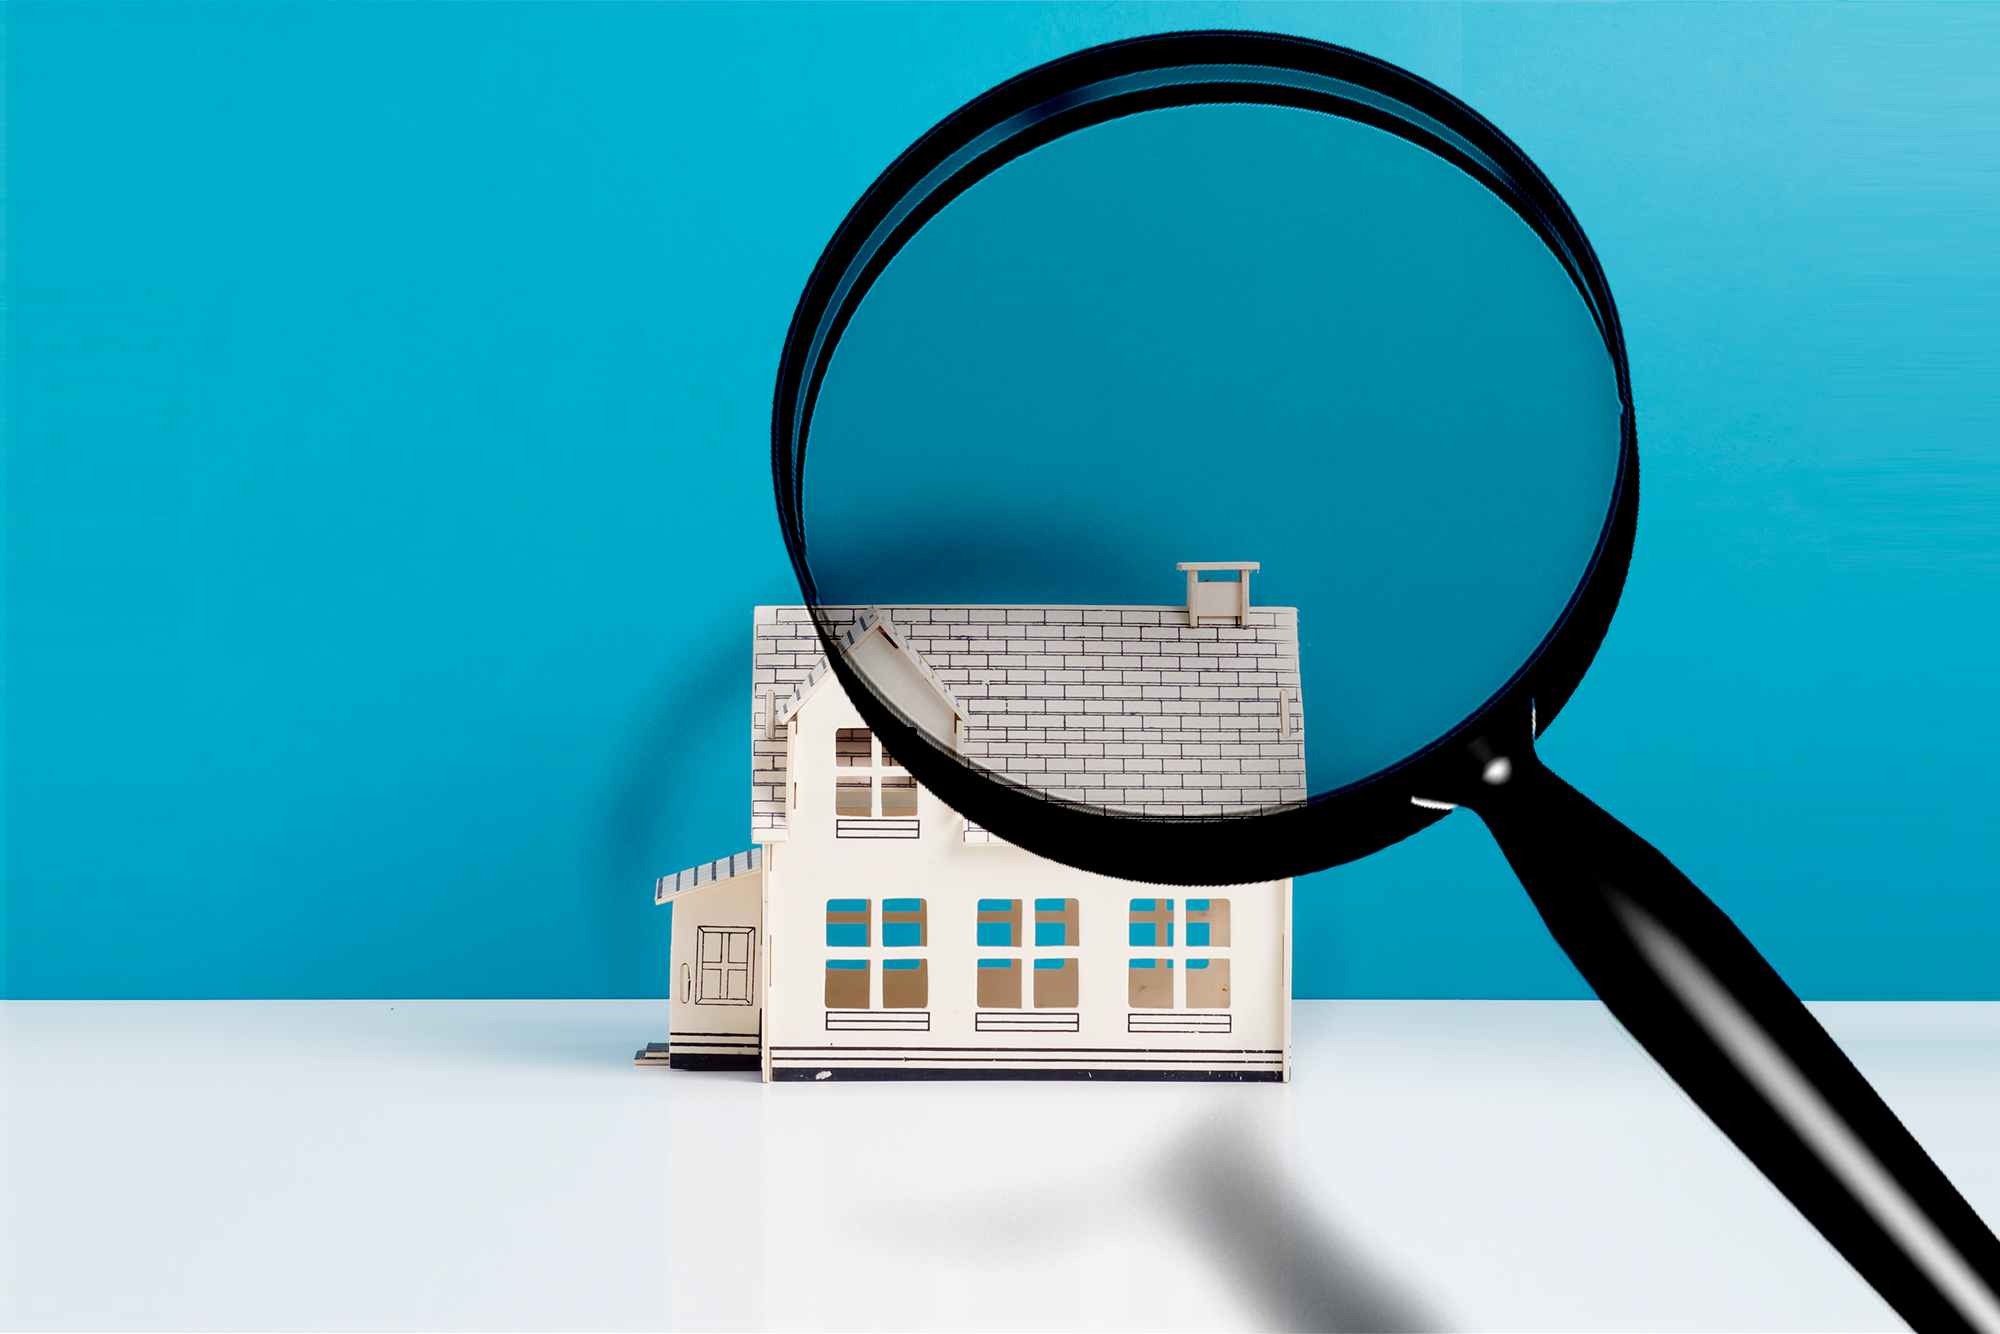 Illustrated magnifying glass and small house